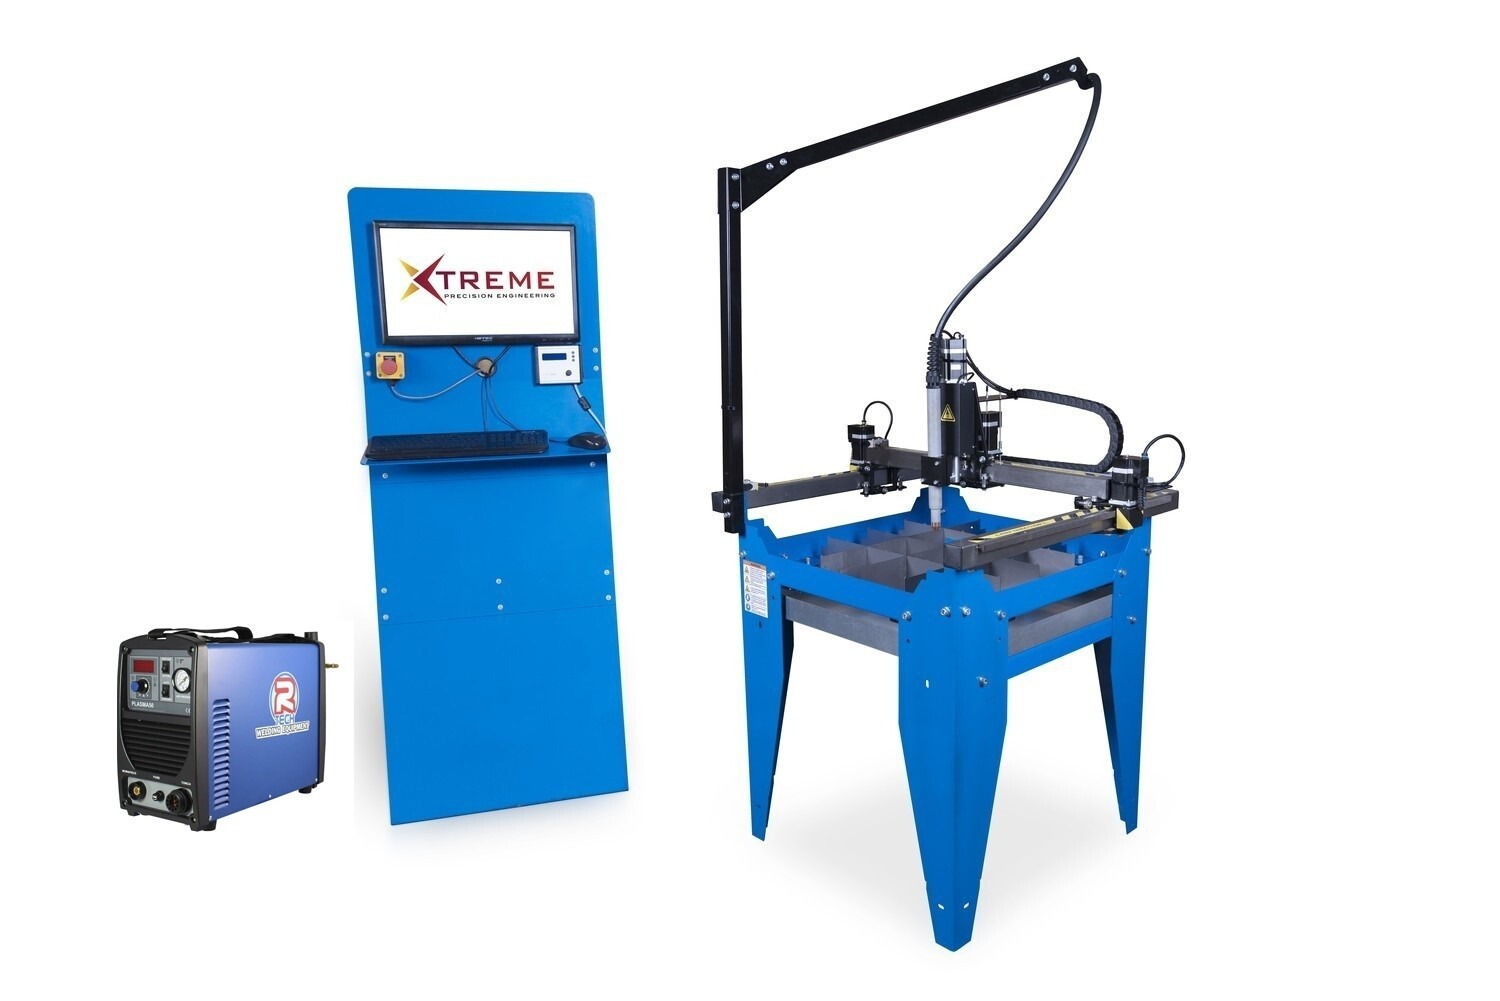 2x2 CNC Complete Plasma Cutting Table Kit & 50 Amp Cutter(240v)(Cut upto 12mm steel)